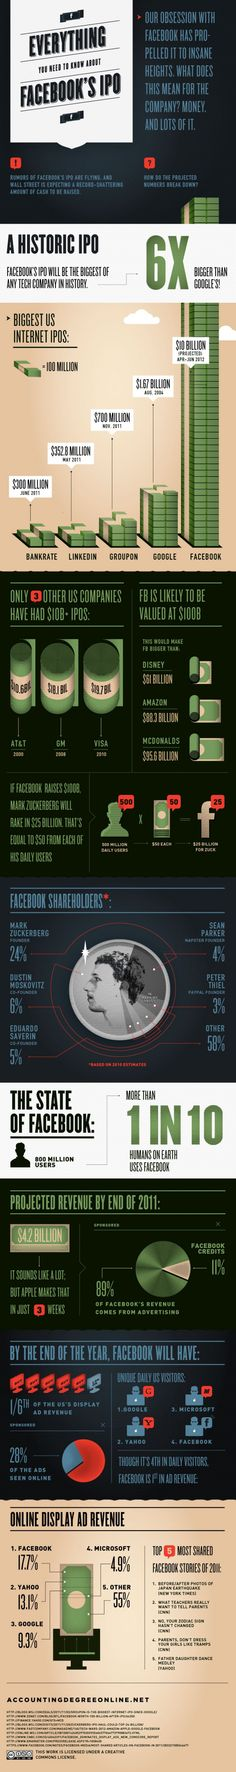 Facebook IPO Price Projection and IPO Signing Date Information [Infographic]